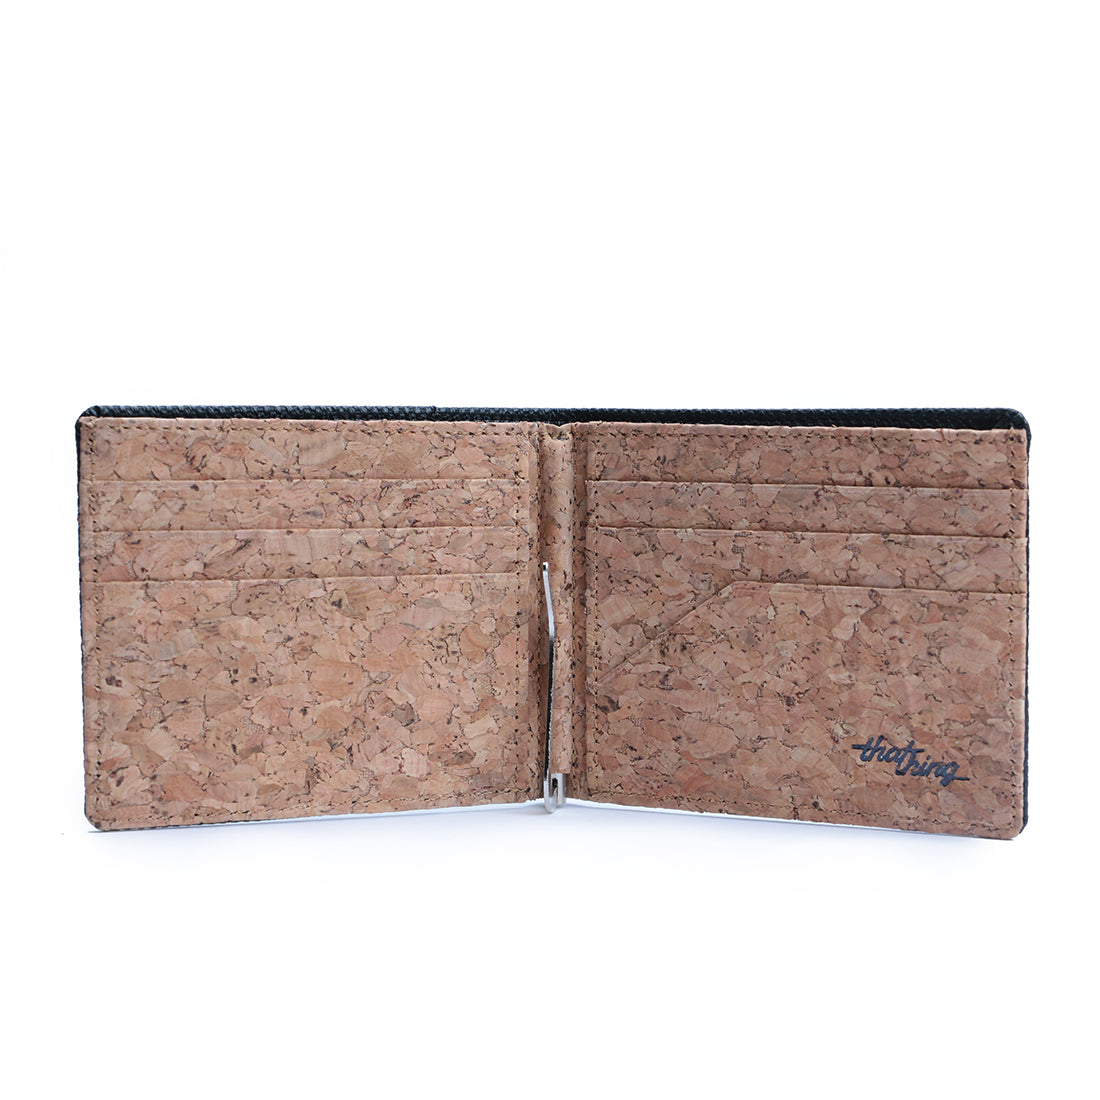 Black & Cork Money Clip Men's Wallet